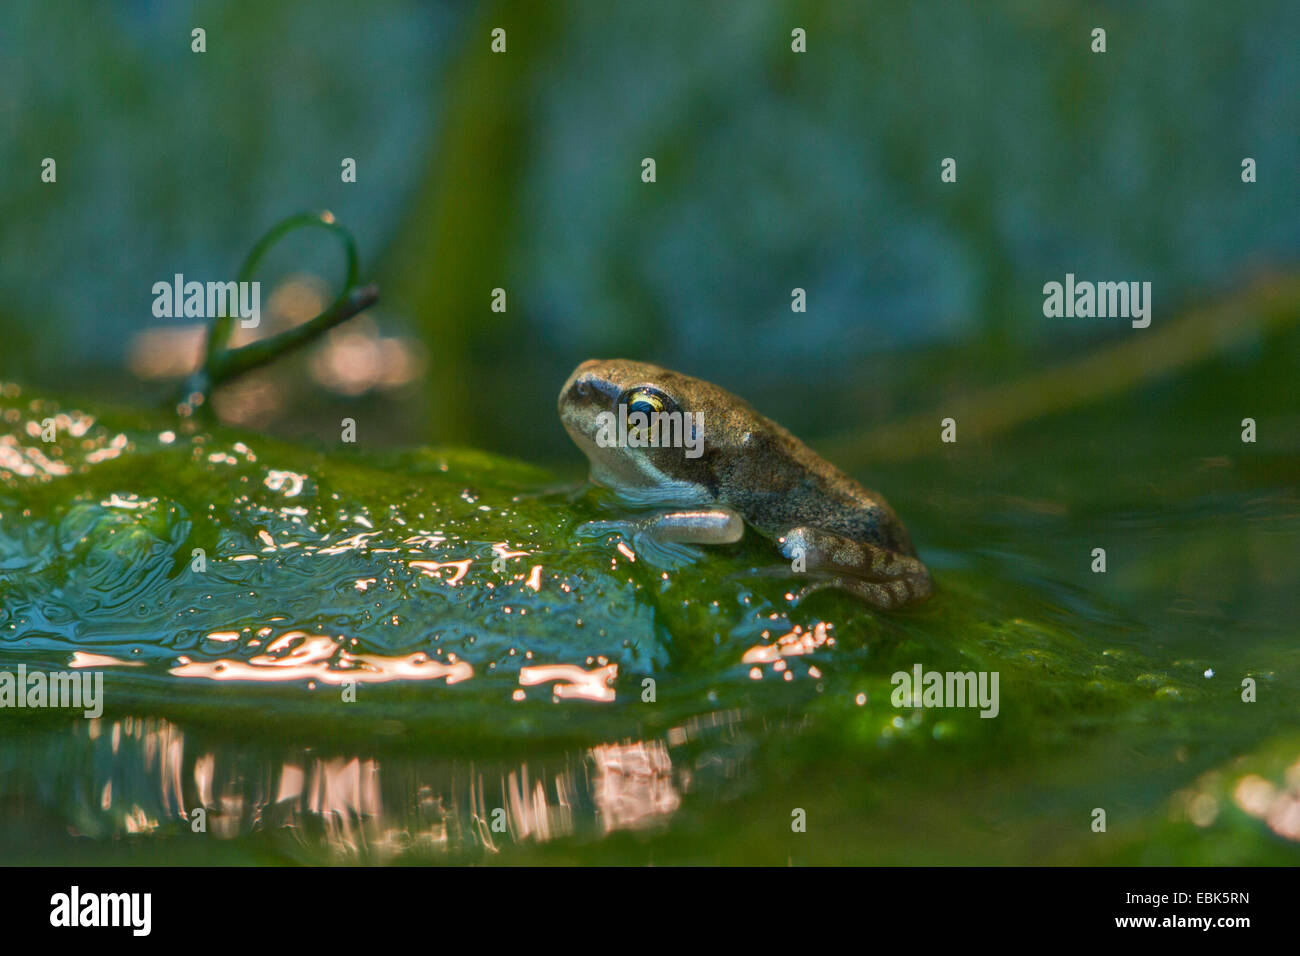 common frog, grass frog (Rana temporaria), leaving water, Germany - Stock Image